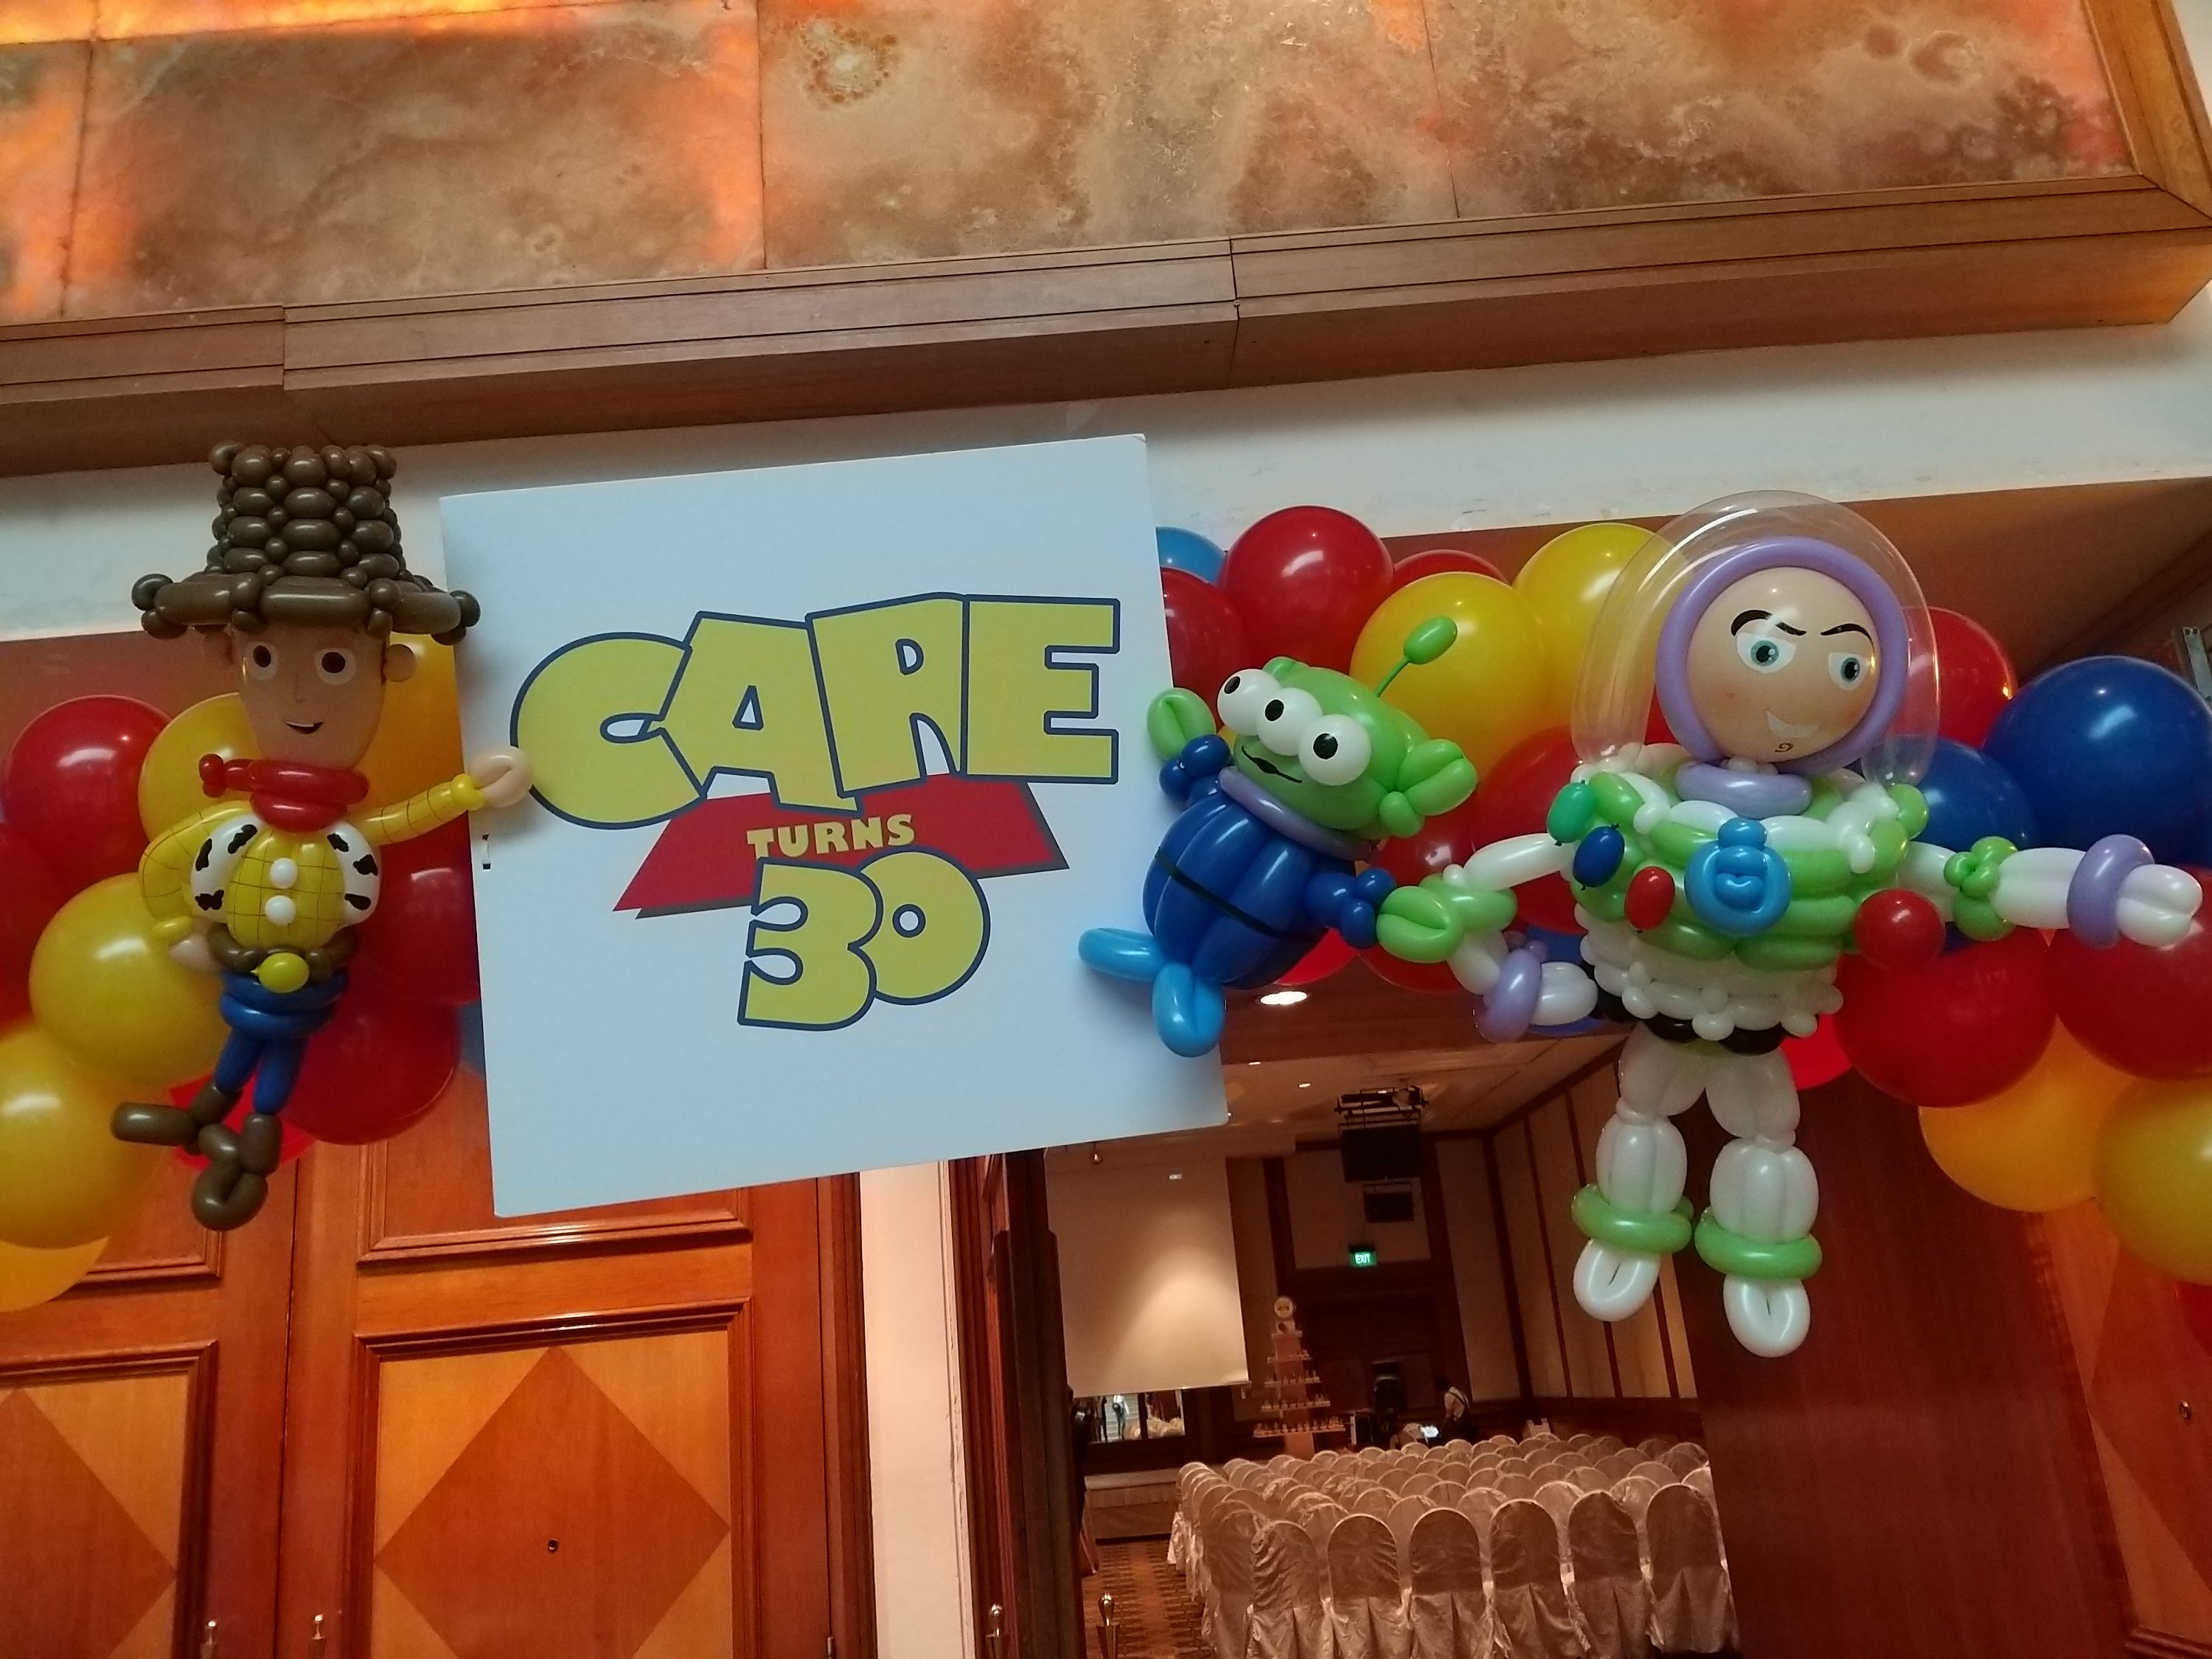 , Toy Story Themed Balloon Decorations, Singapore Balloon Decoration Services - Balloon Workshop and Balloon Sculpting